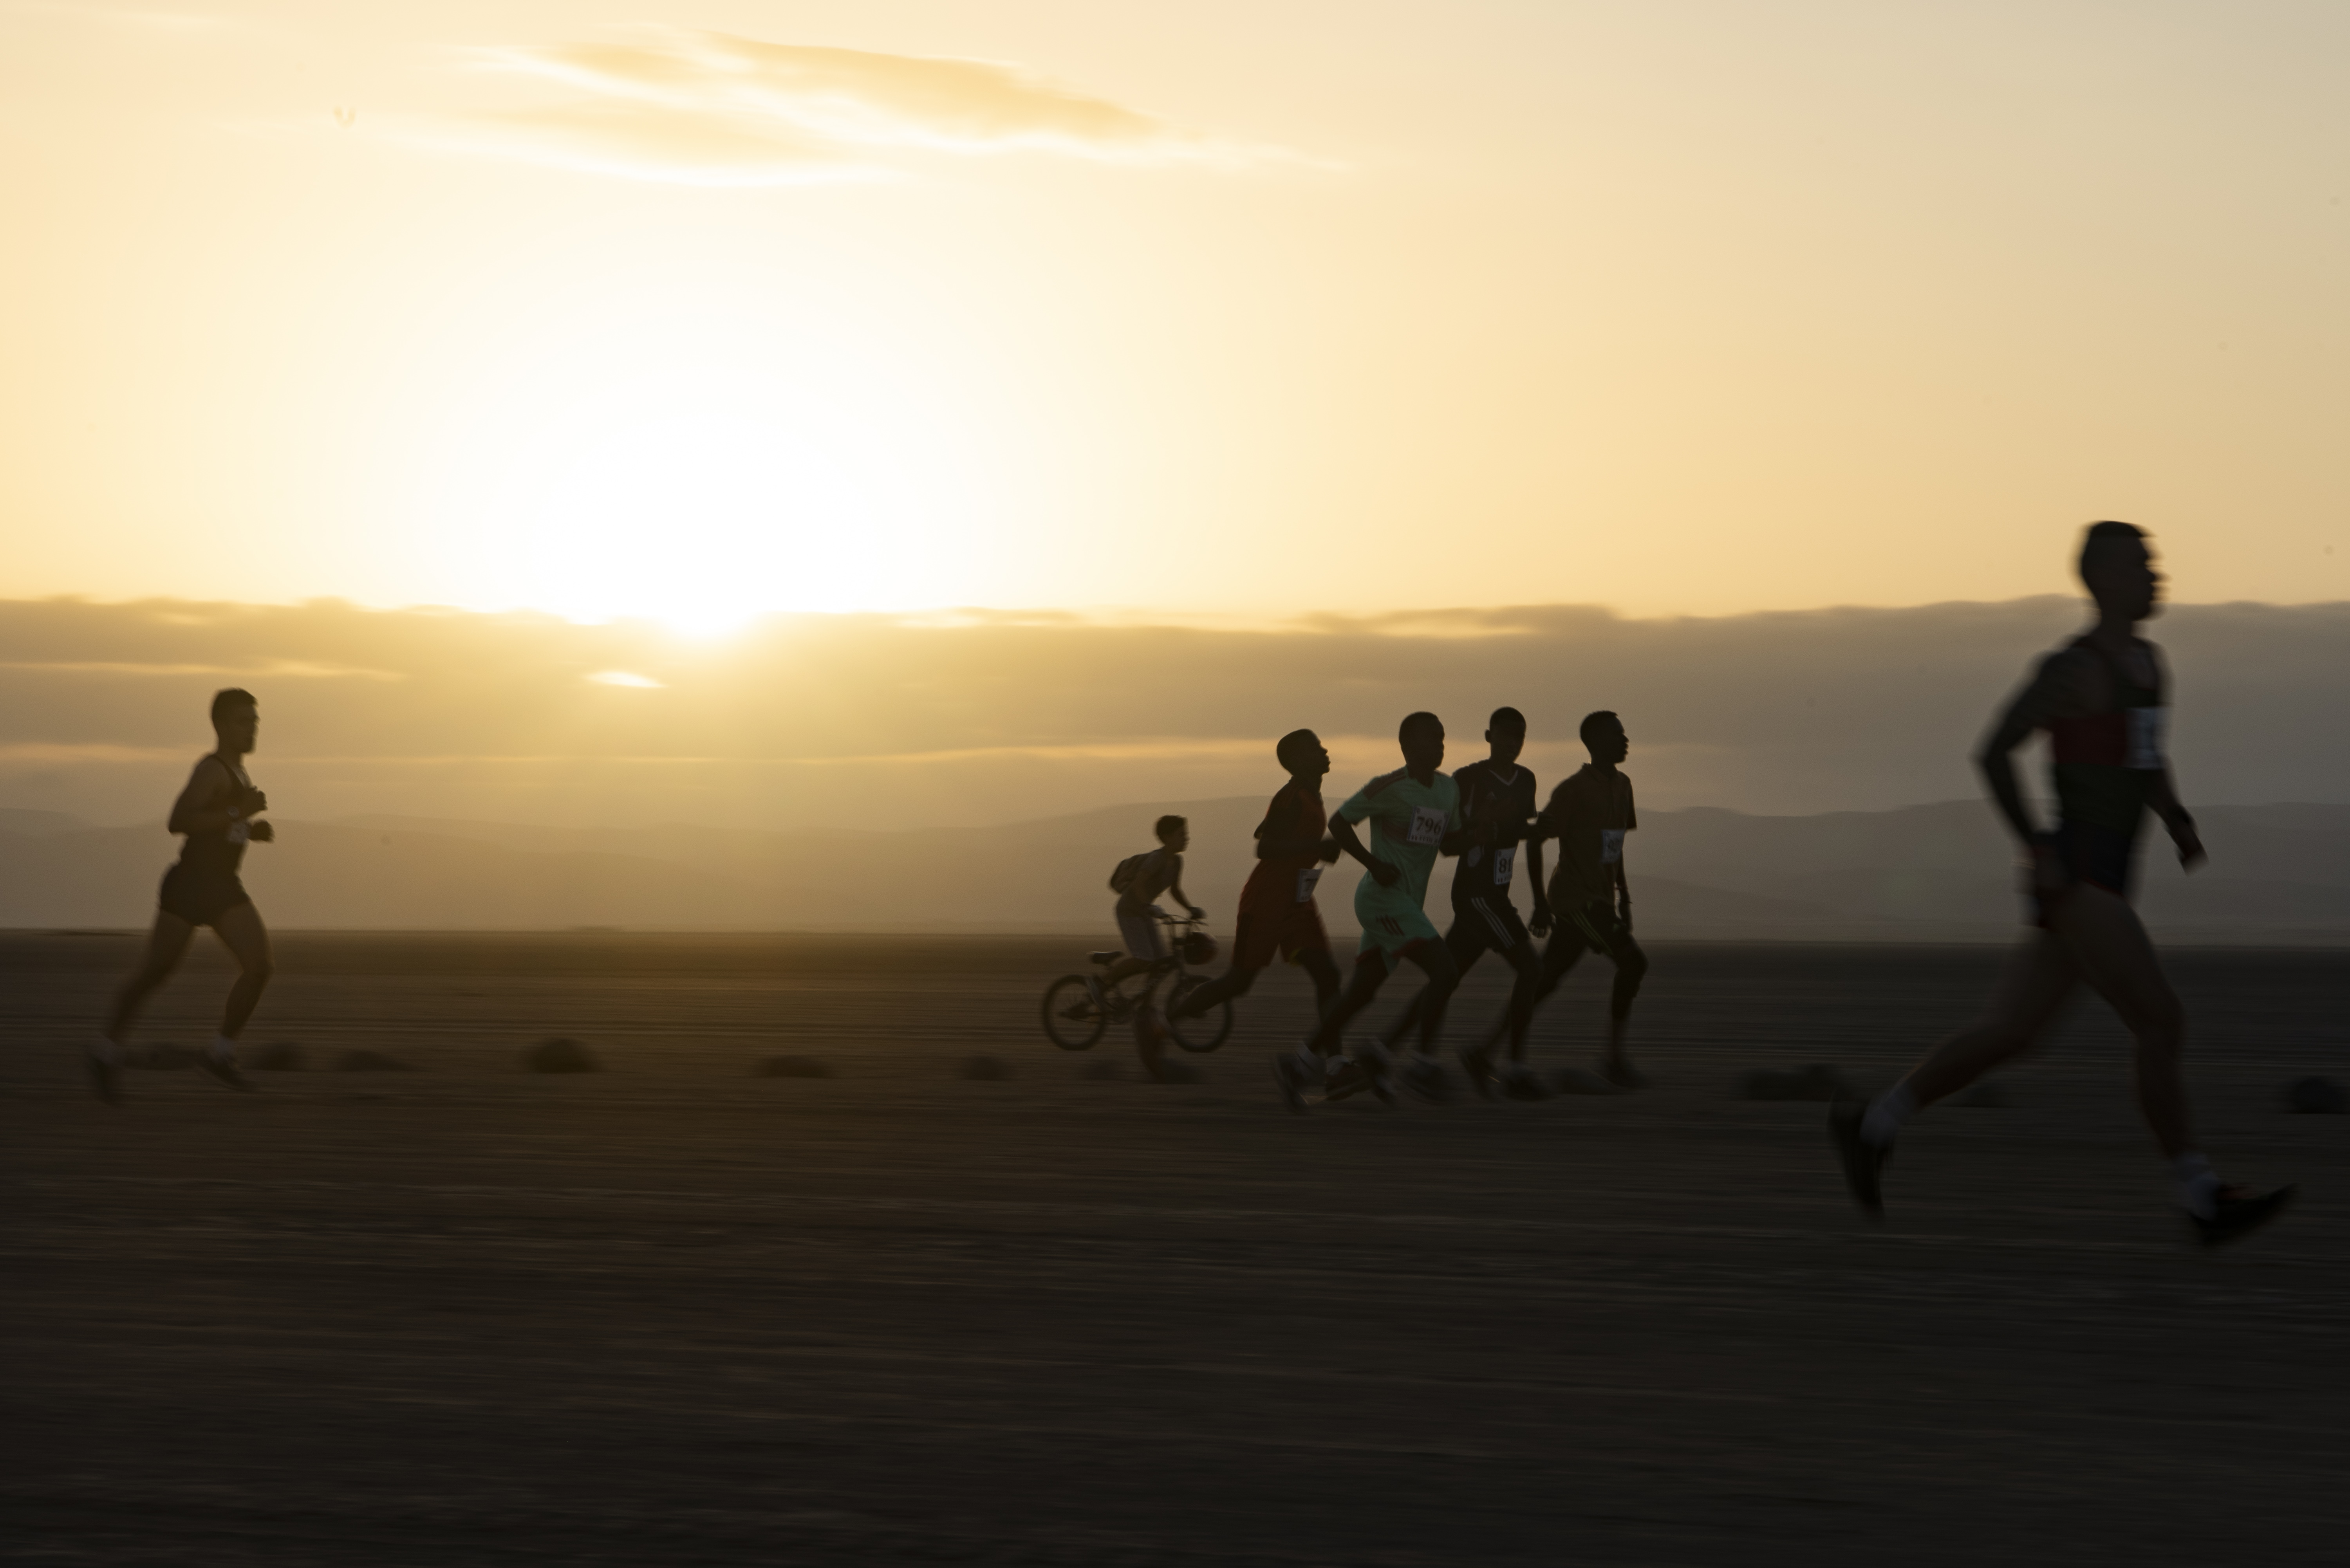 Participants of the Grand Bara Race run along the 15k trail as the sun rises over the Grand Bara Desert, Djibouti, Jan. 15, 2020.  The annual race is typically held during November or December, but was postponed in 2019 due to excessive rain. (U.S. Air Force photo by Tech. Sgt. Ashley Nicole Taylor)